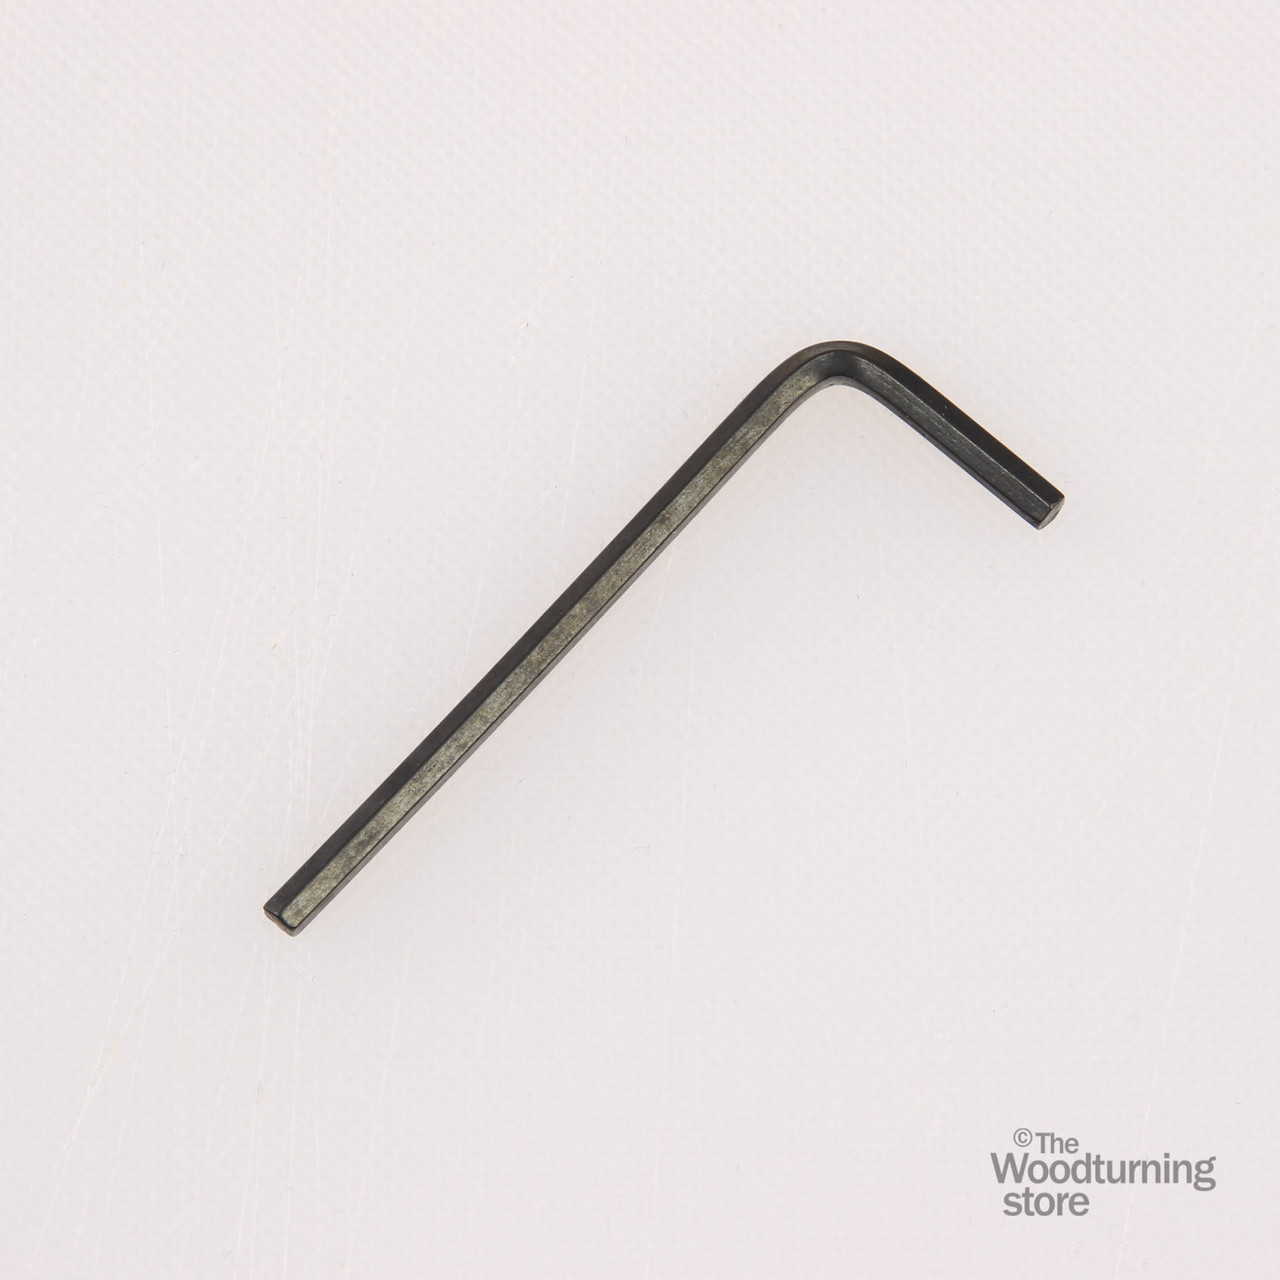 Hurricane 3mm L Wrench for Woodturning Chucks